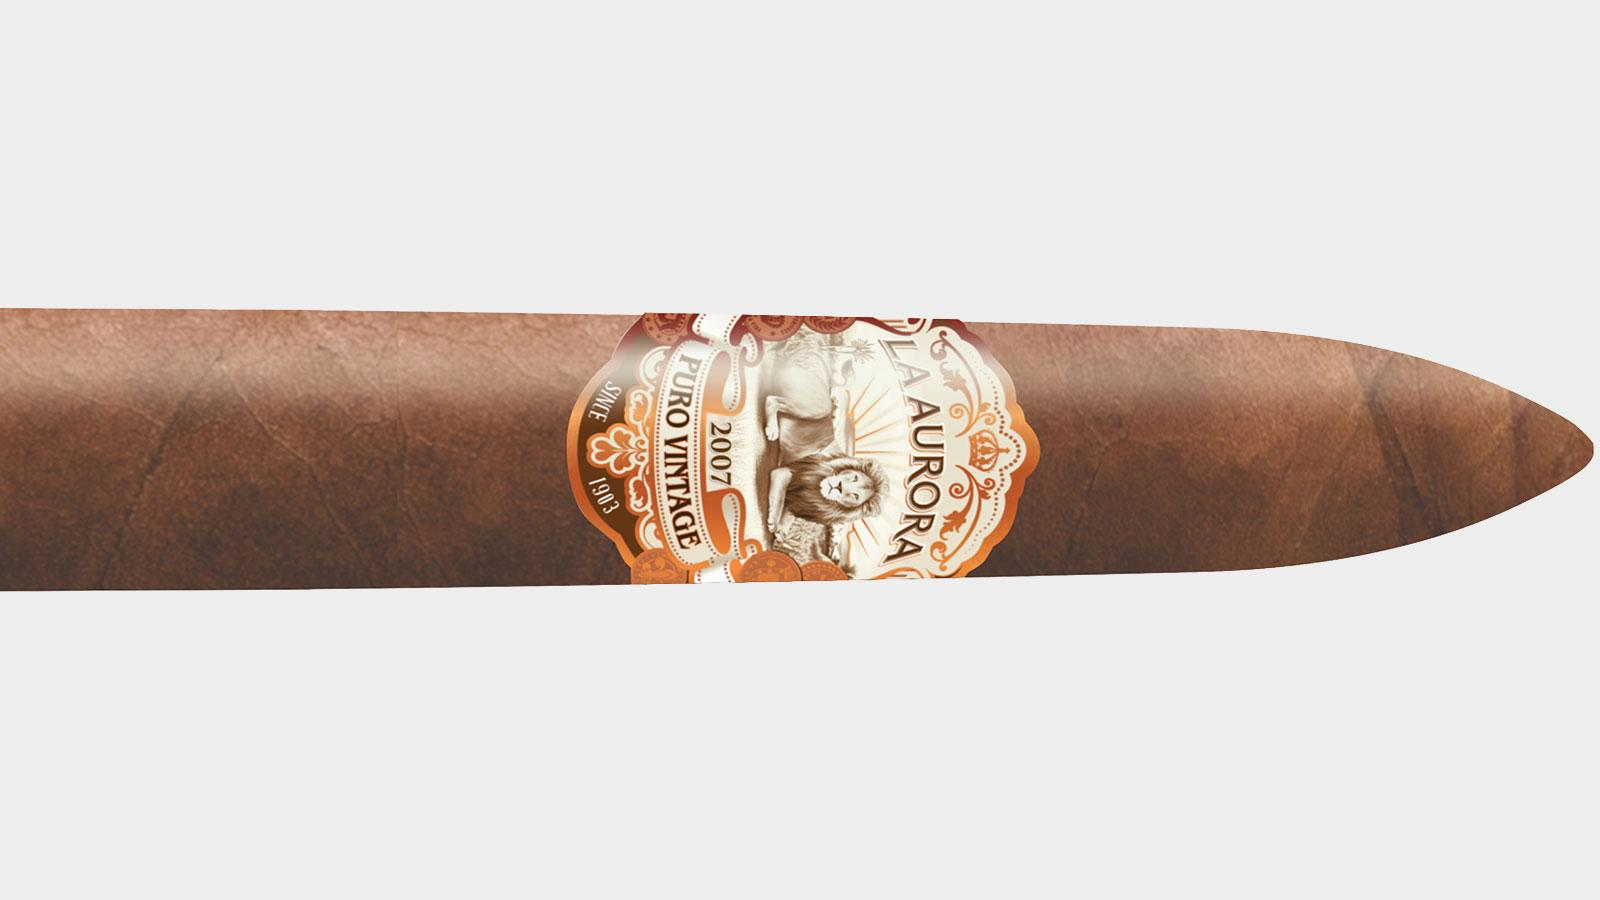 La Aurora Brings Back Puro Vintage With Tobacco From 2007